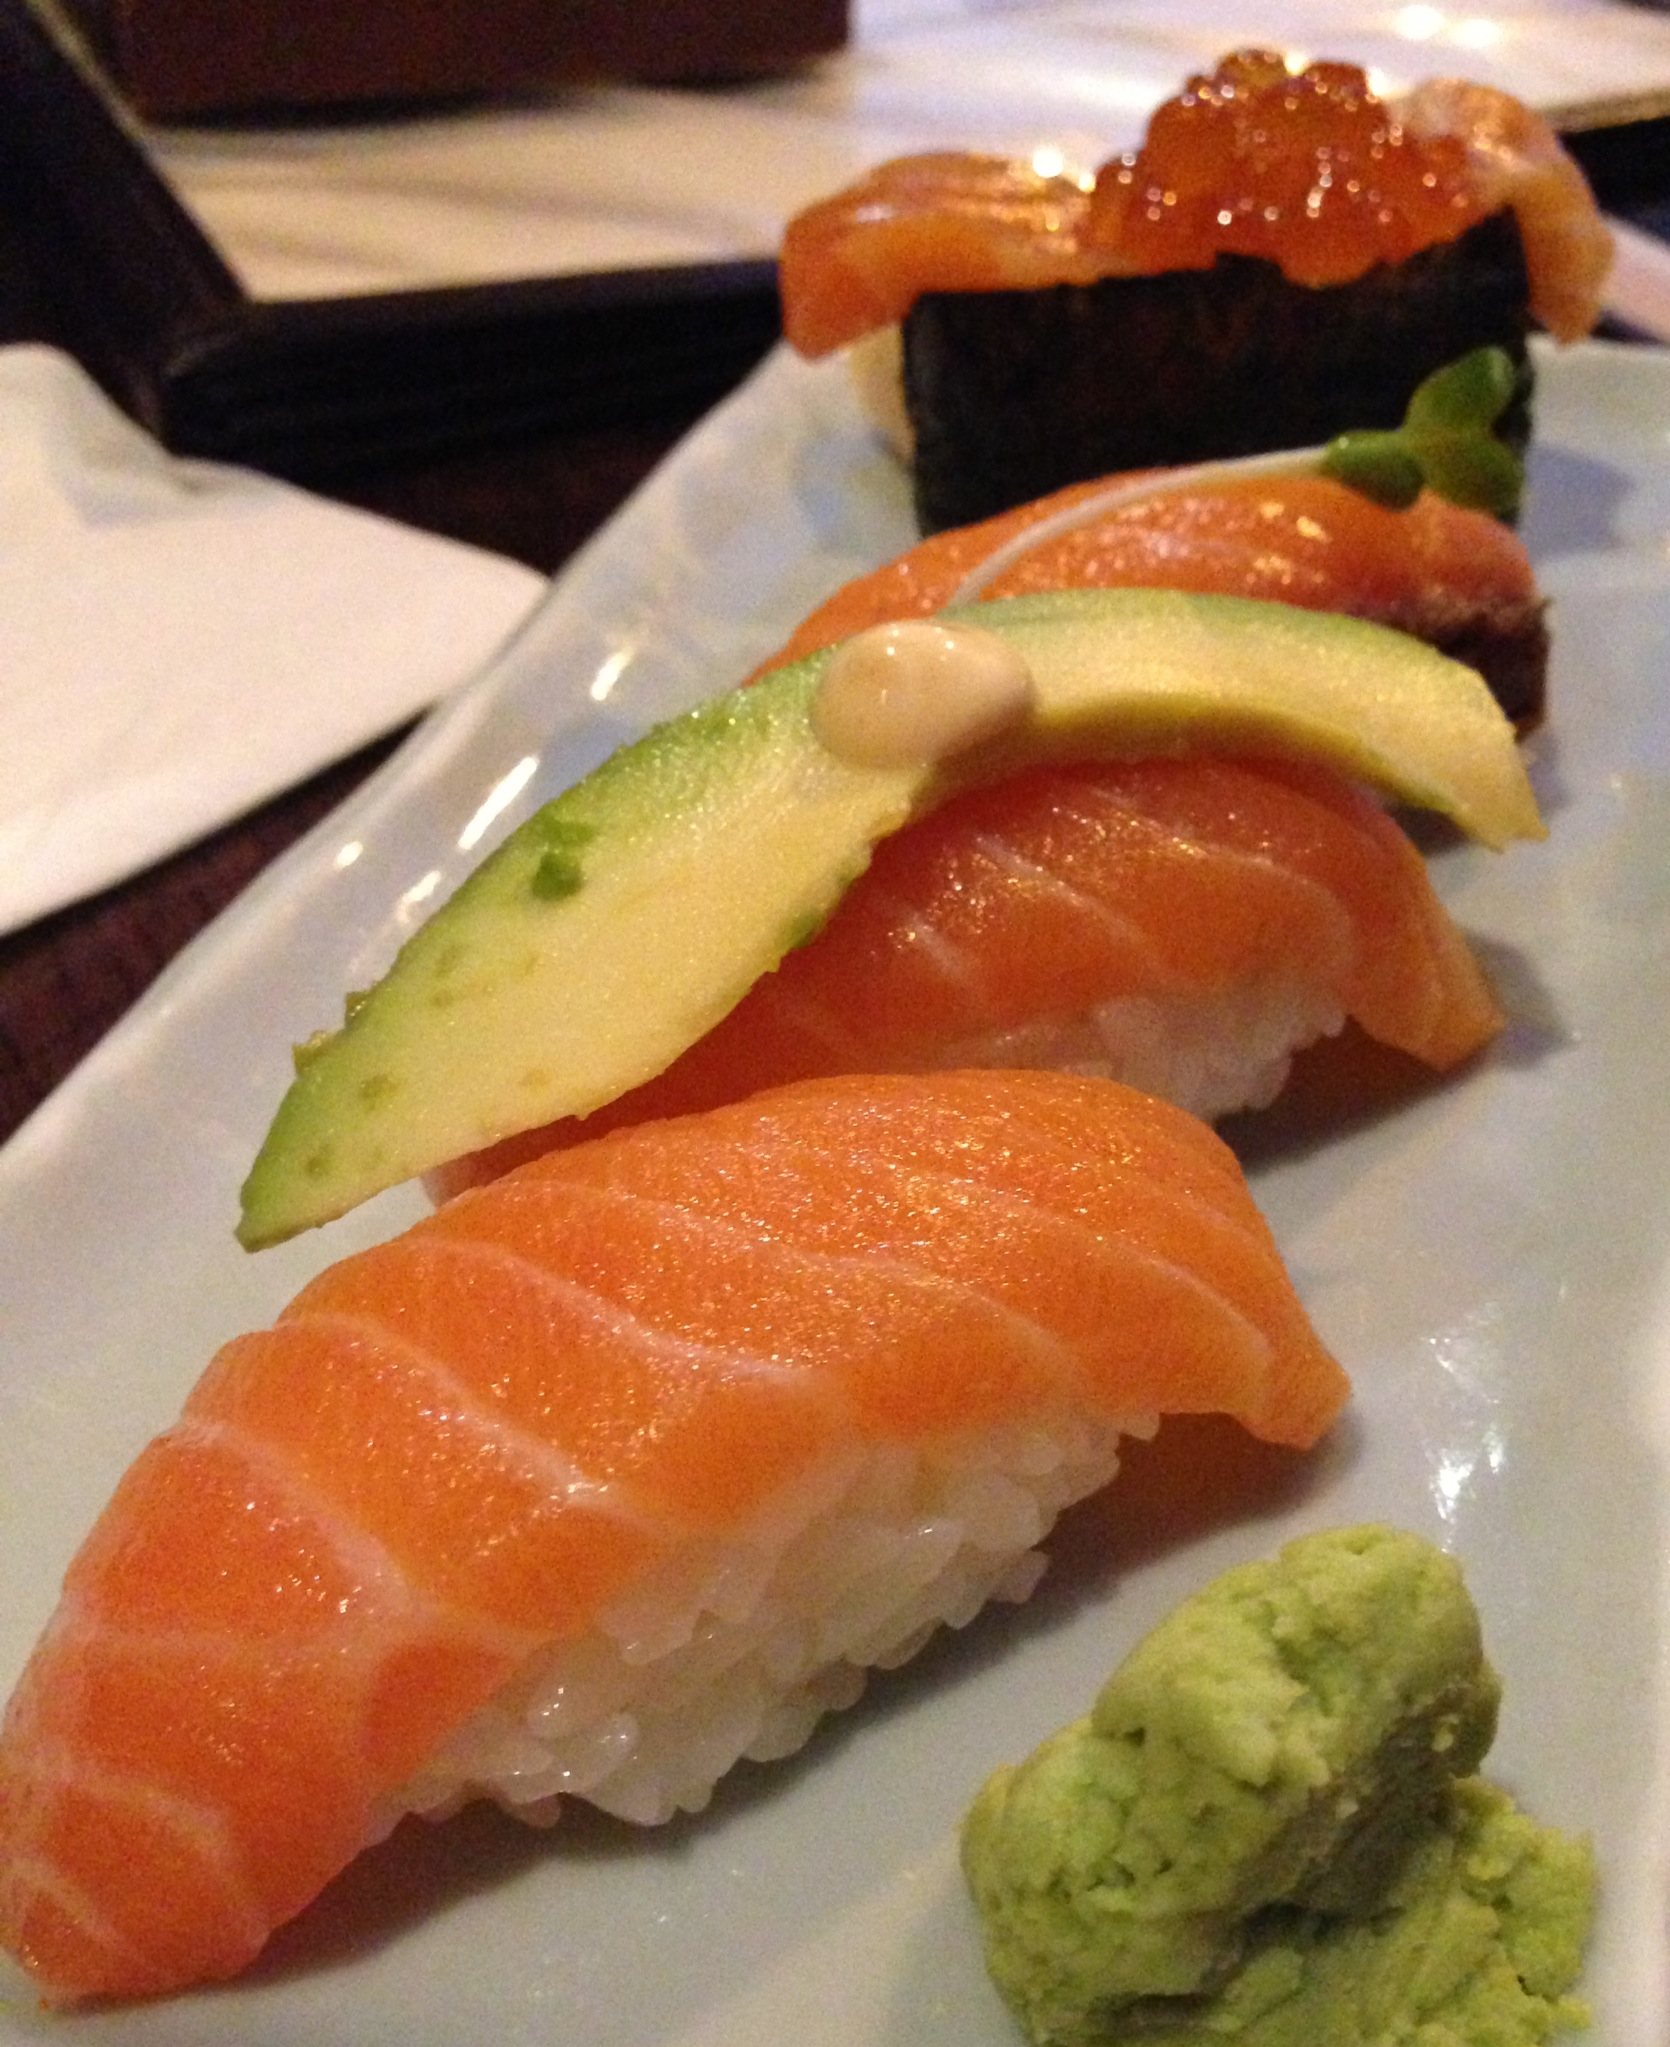 All Salmon Everything: Marinated, Avocado, Spicy Mayo, Roe Boat Wrapped!